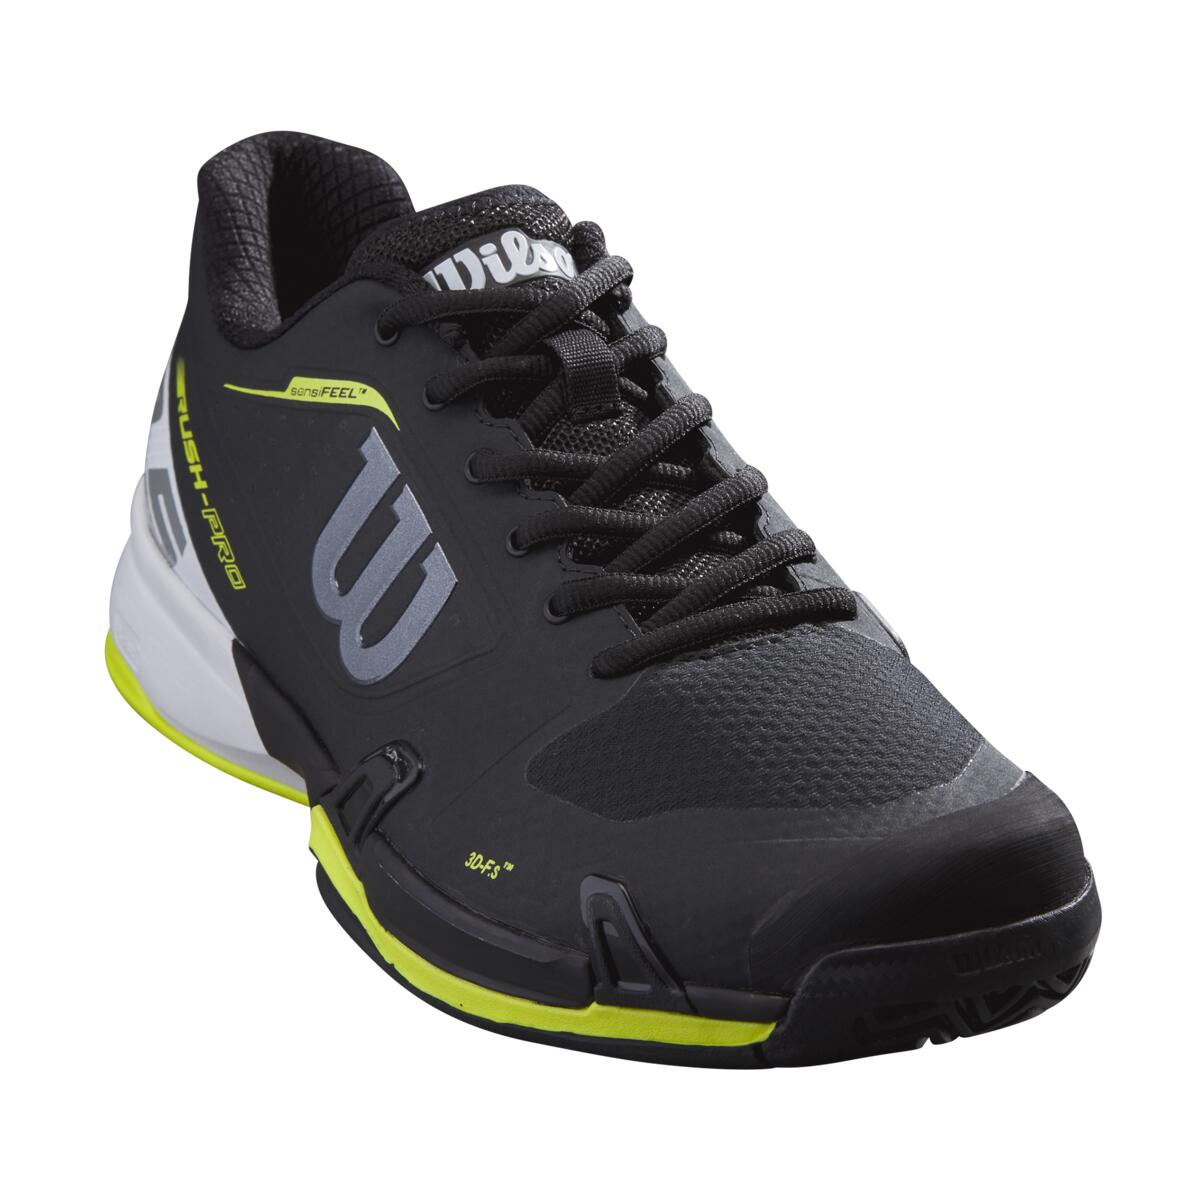 Wilson Rush Pro 2.5 AC Mens Tennis Shoes – Black/White/Lime Popsicle